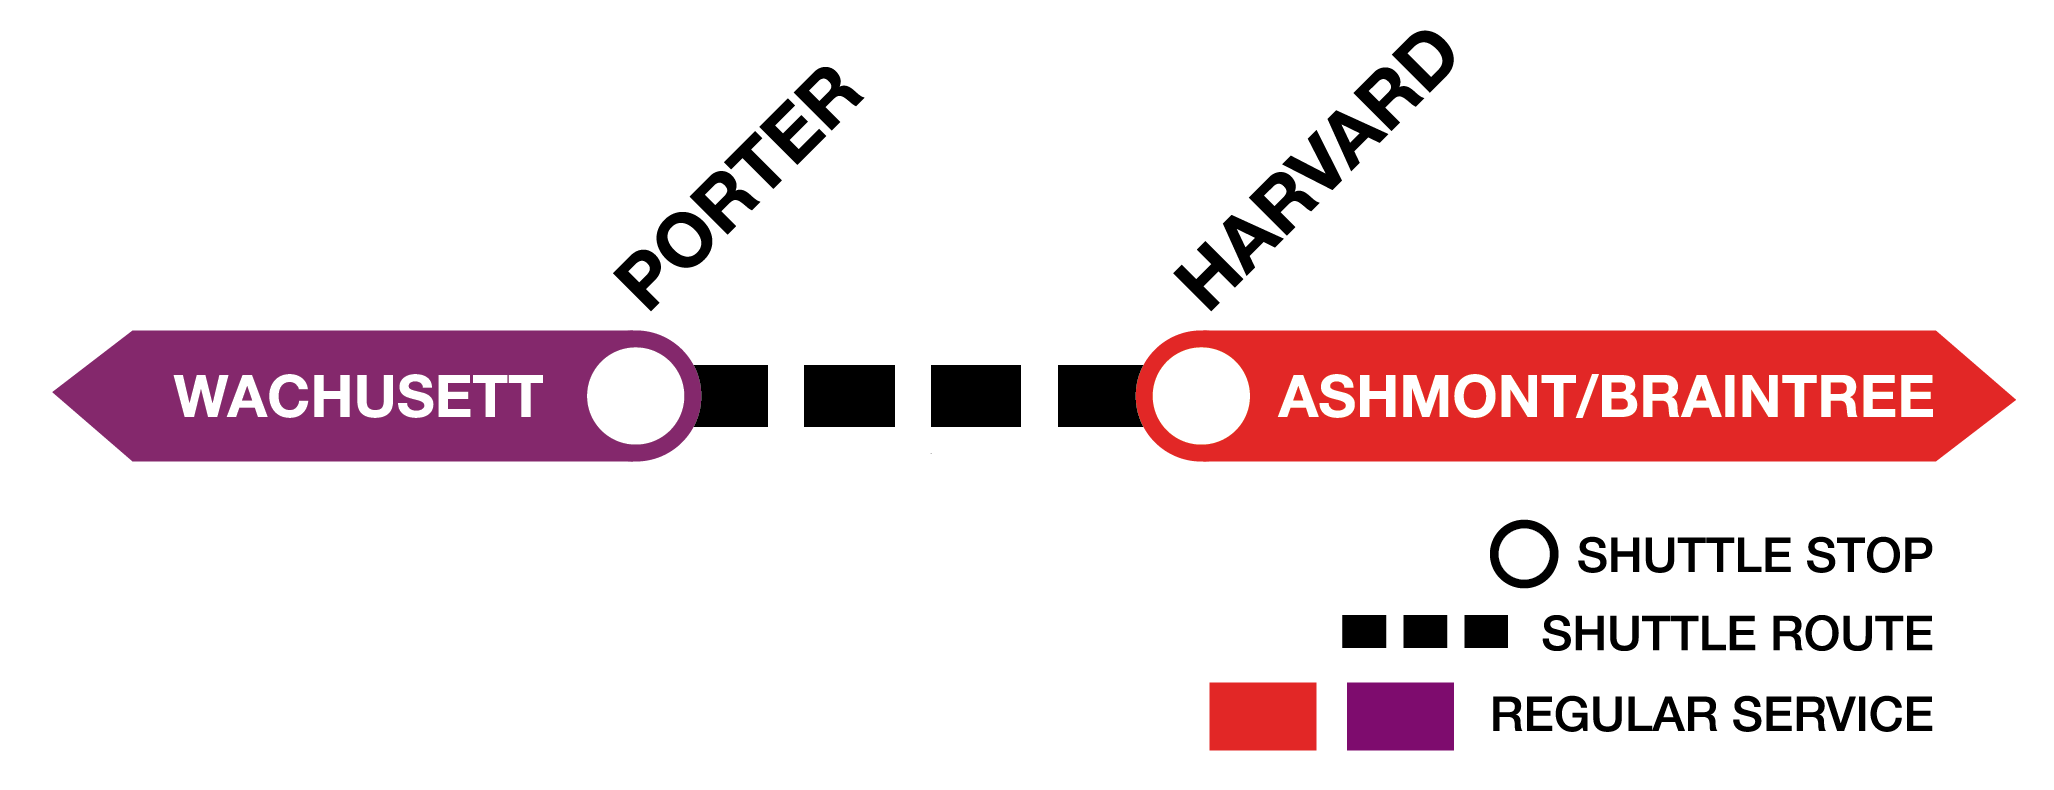 Shuttle diagram showing Commuter Rail Fitchburg Line service to Porter, then bus shuttles between Porter and Harvard, then connecting Red Line service from Harvard to Ashmont/Braintree.